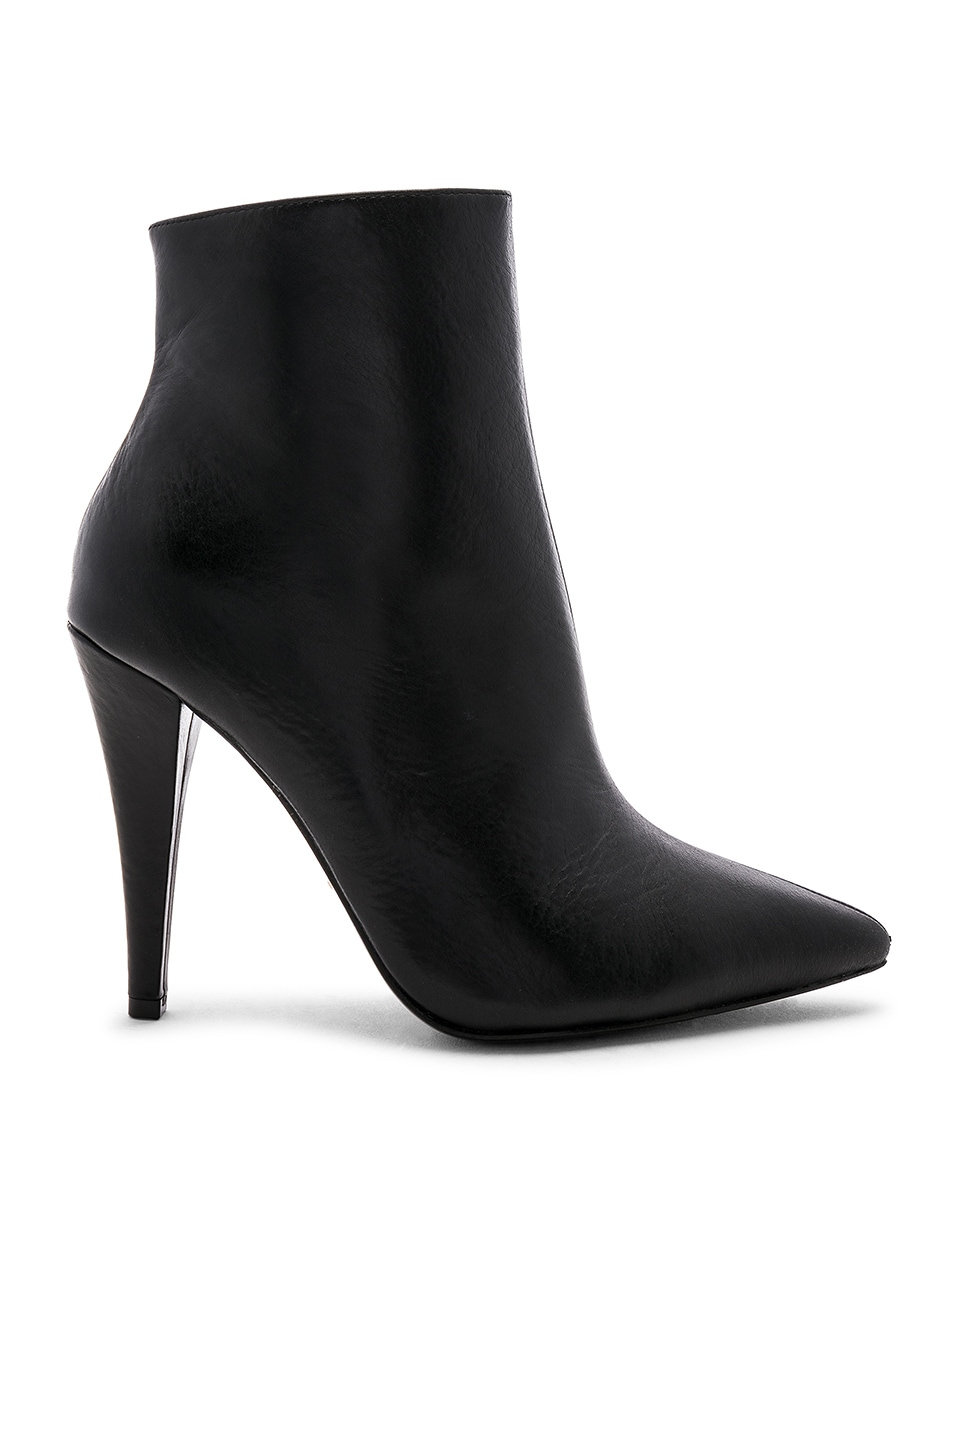 RAYE Biloxi Bootie in Black